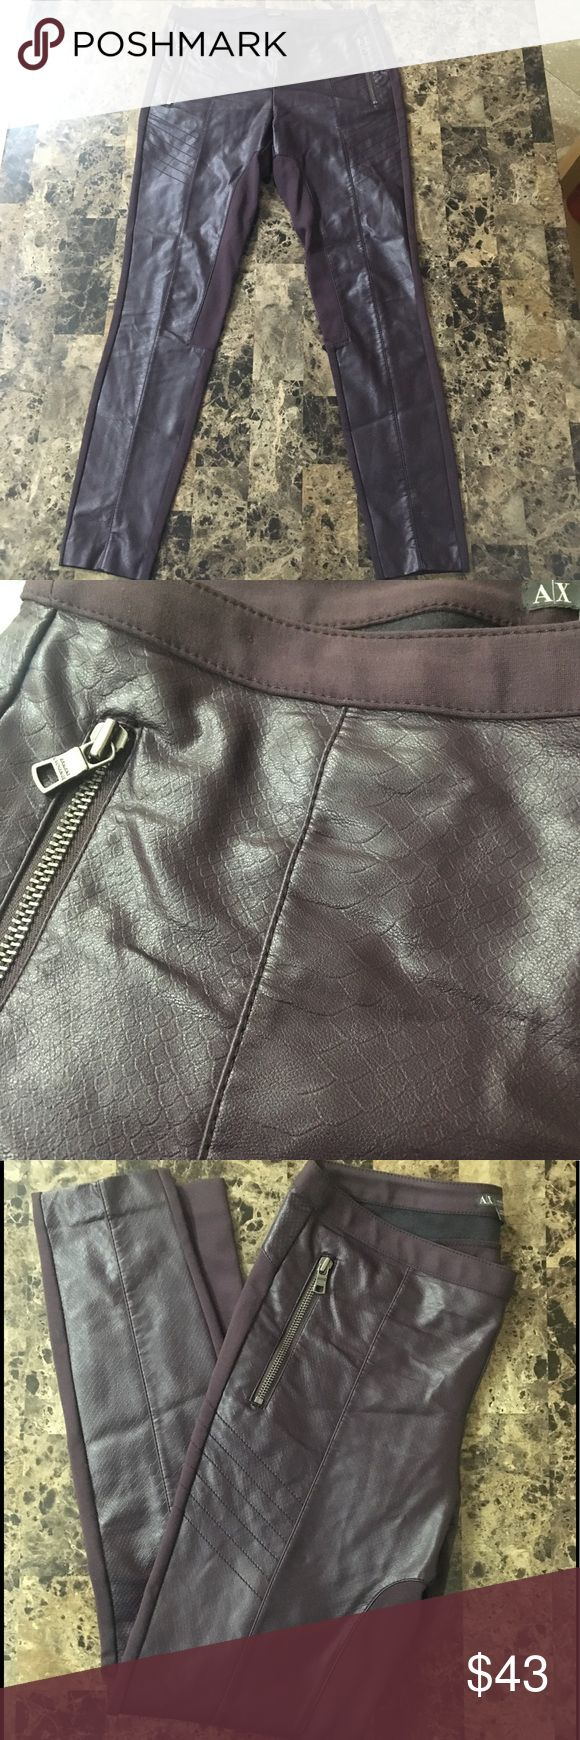 Armani Exchange stunning leather pants/leggings Armani Exchange stunning leather pants, Stretchy leggings. Dark plum/maroon in color. Zippered pockets give these pants a cool edge! EUC condition, no issues! Thanks! Armani Exchange Pants Leggings